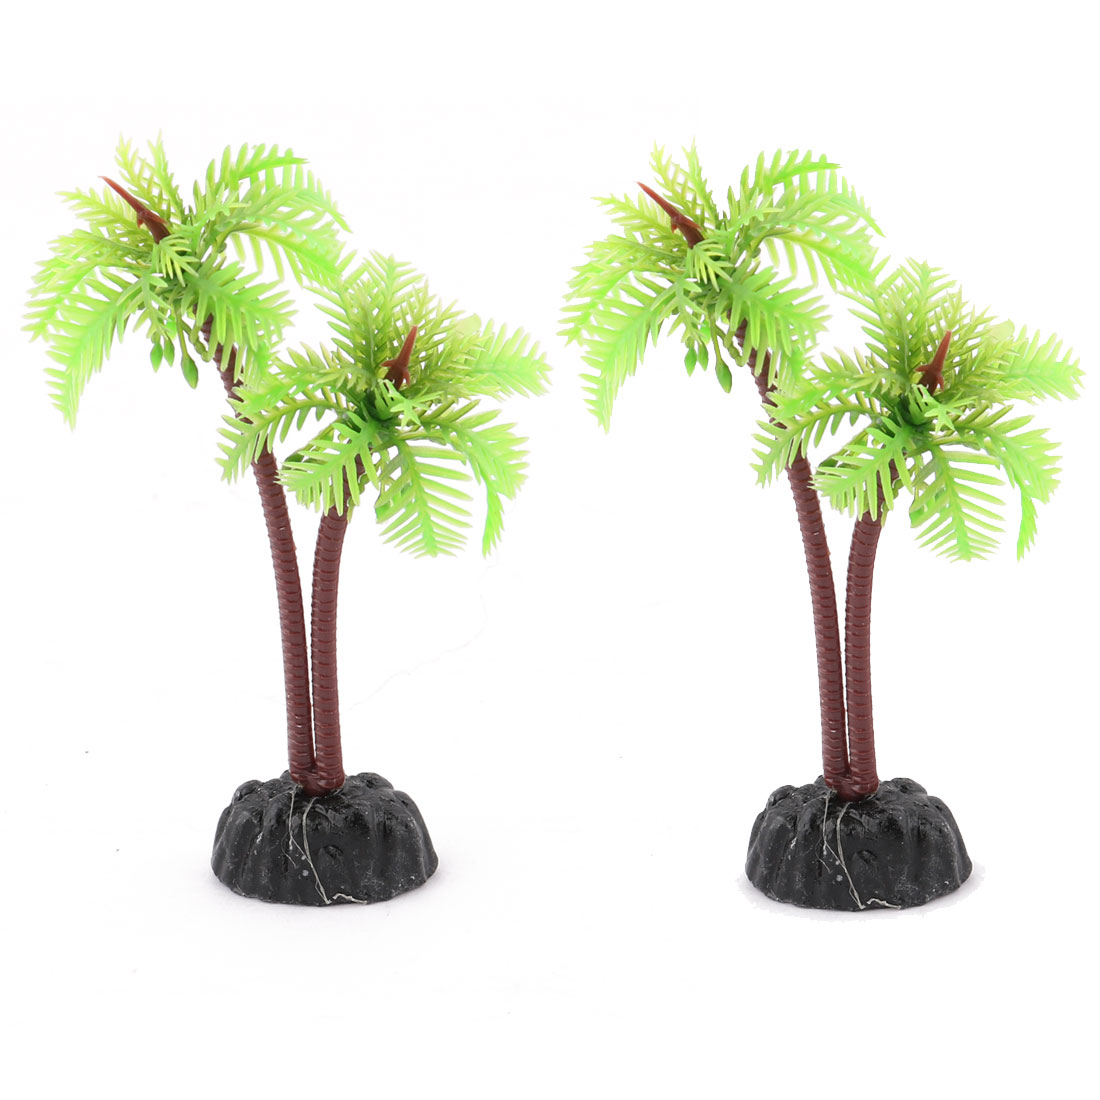 Aquarium Imitate Coconut Tree Underwater Plant Decor Decoration 2pcs